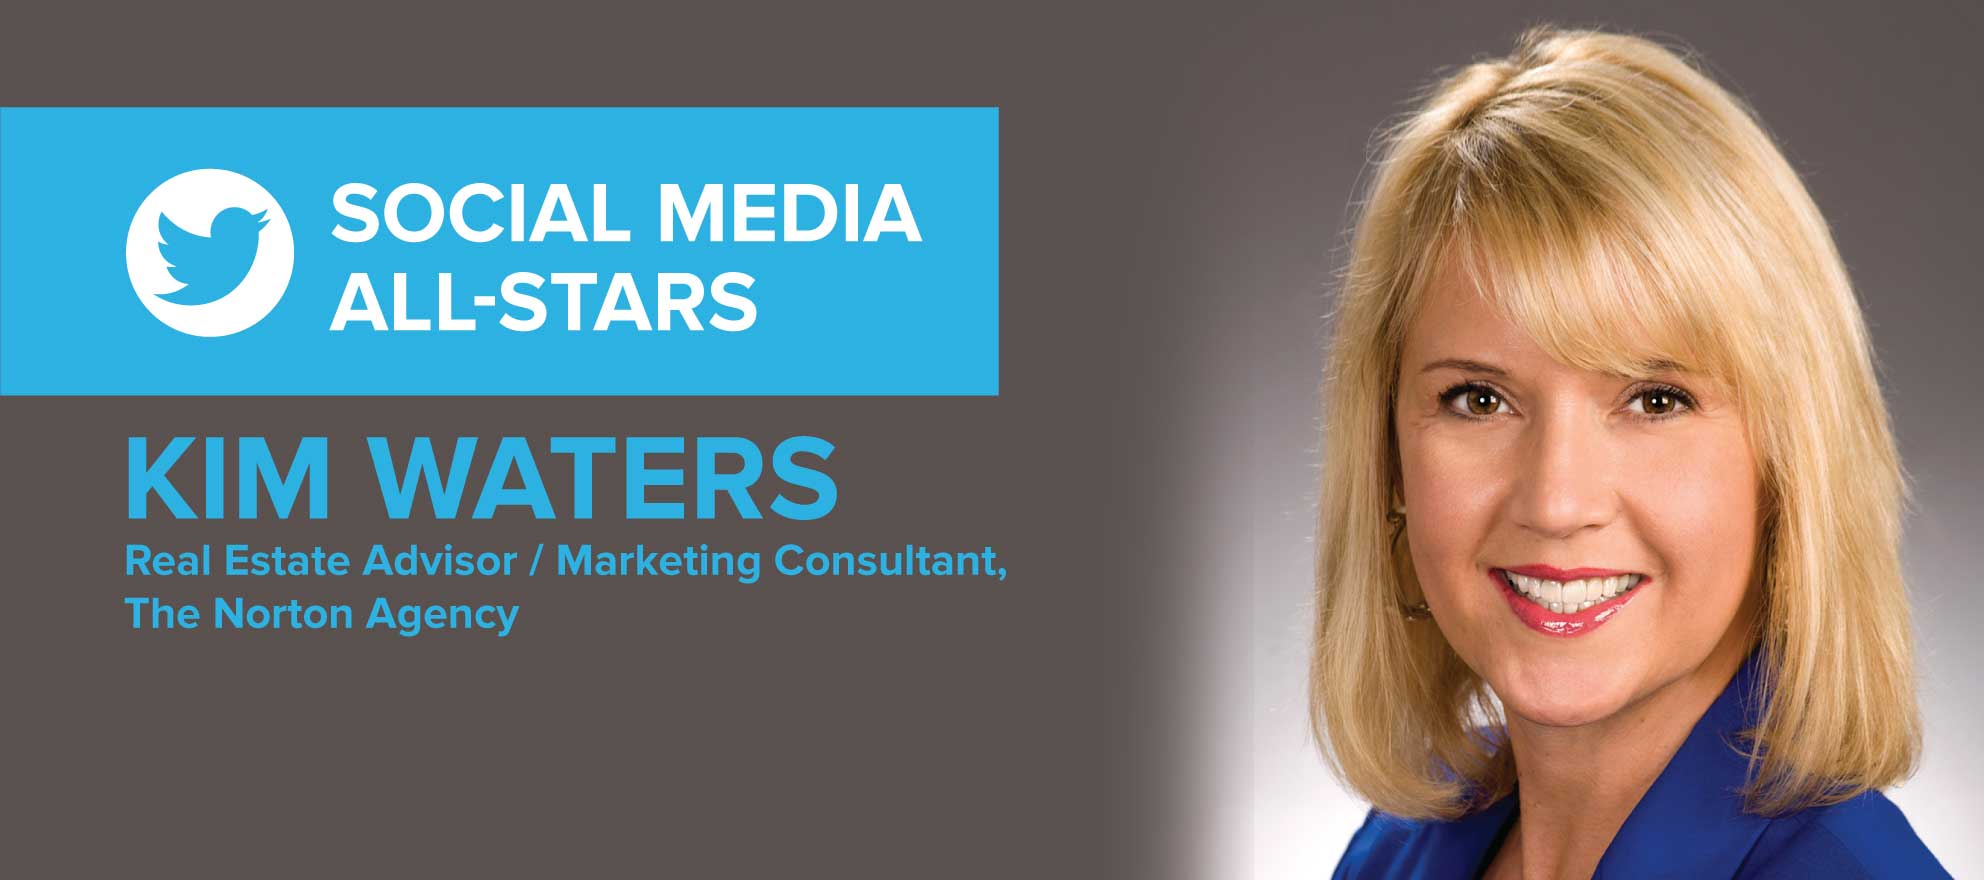 Kim Waters: 'My most productive relationships incorporate social media'